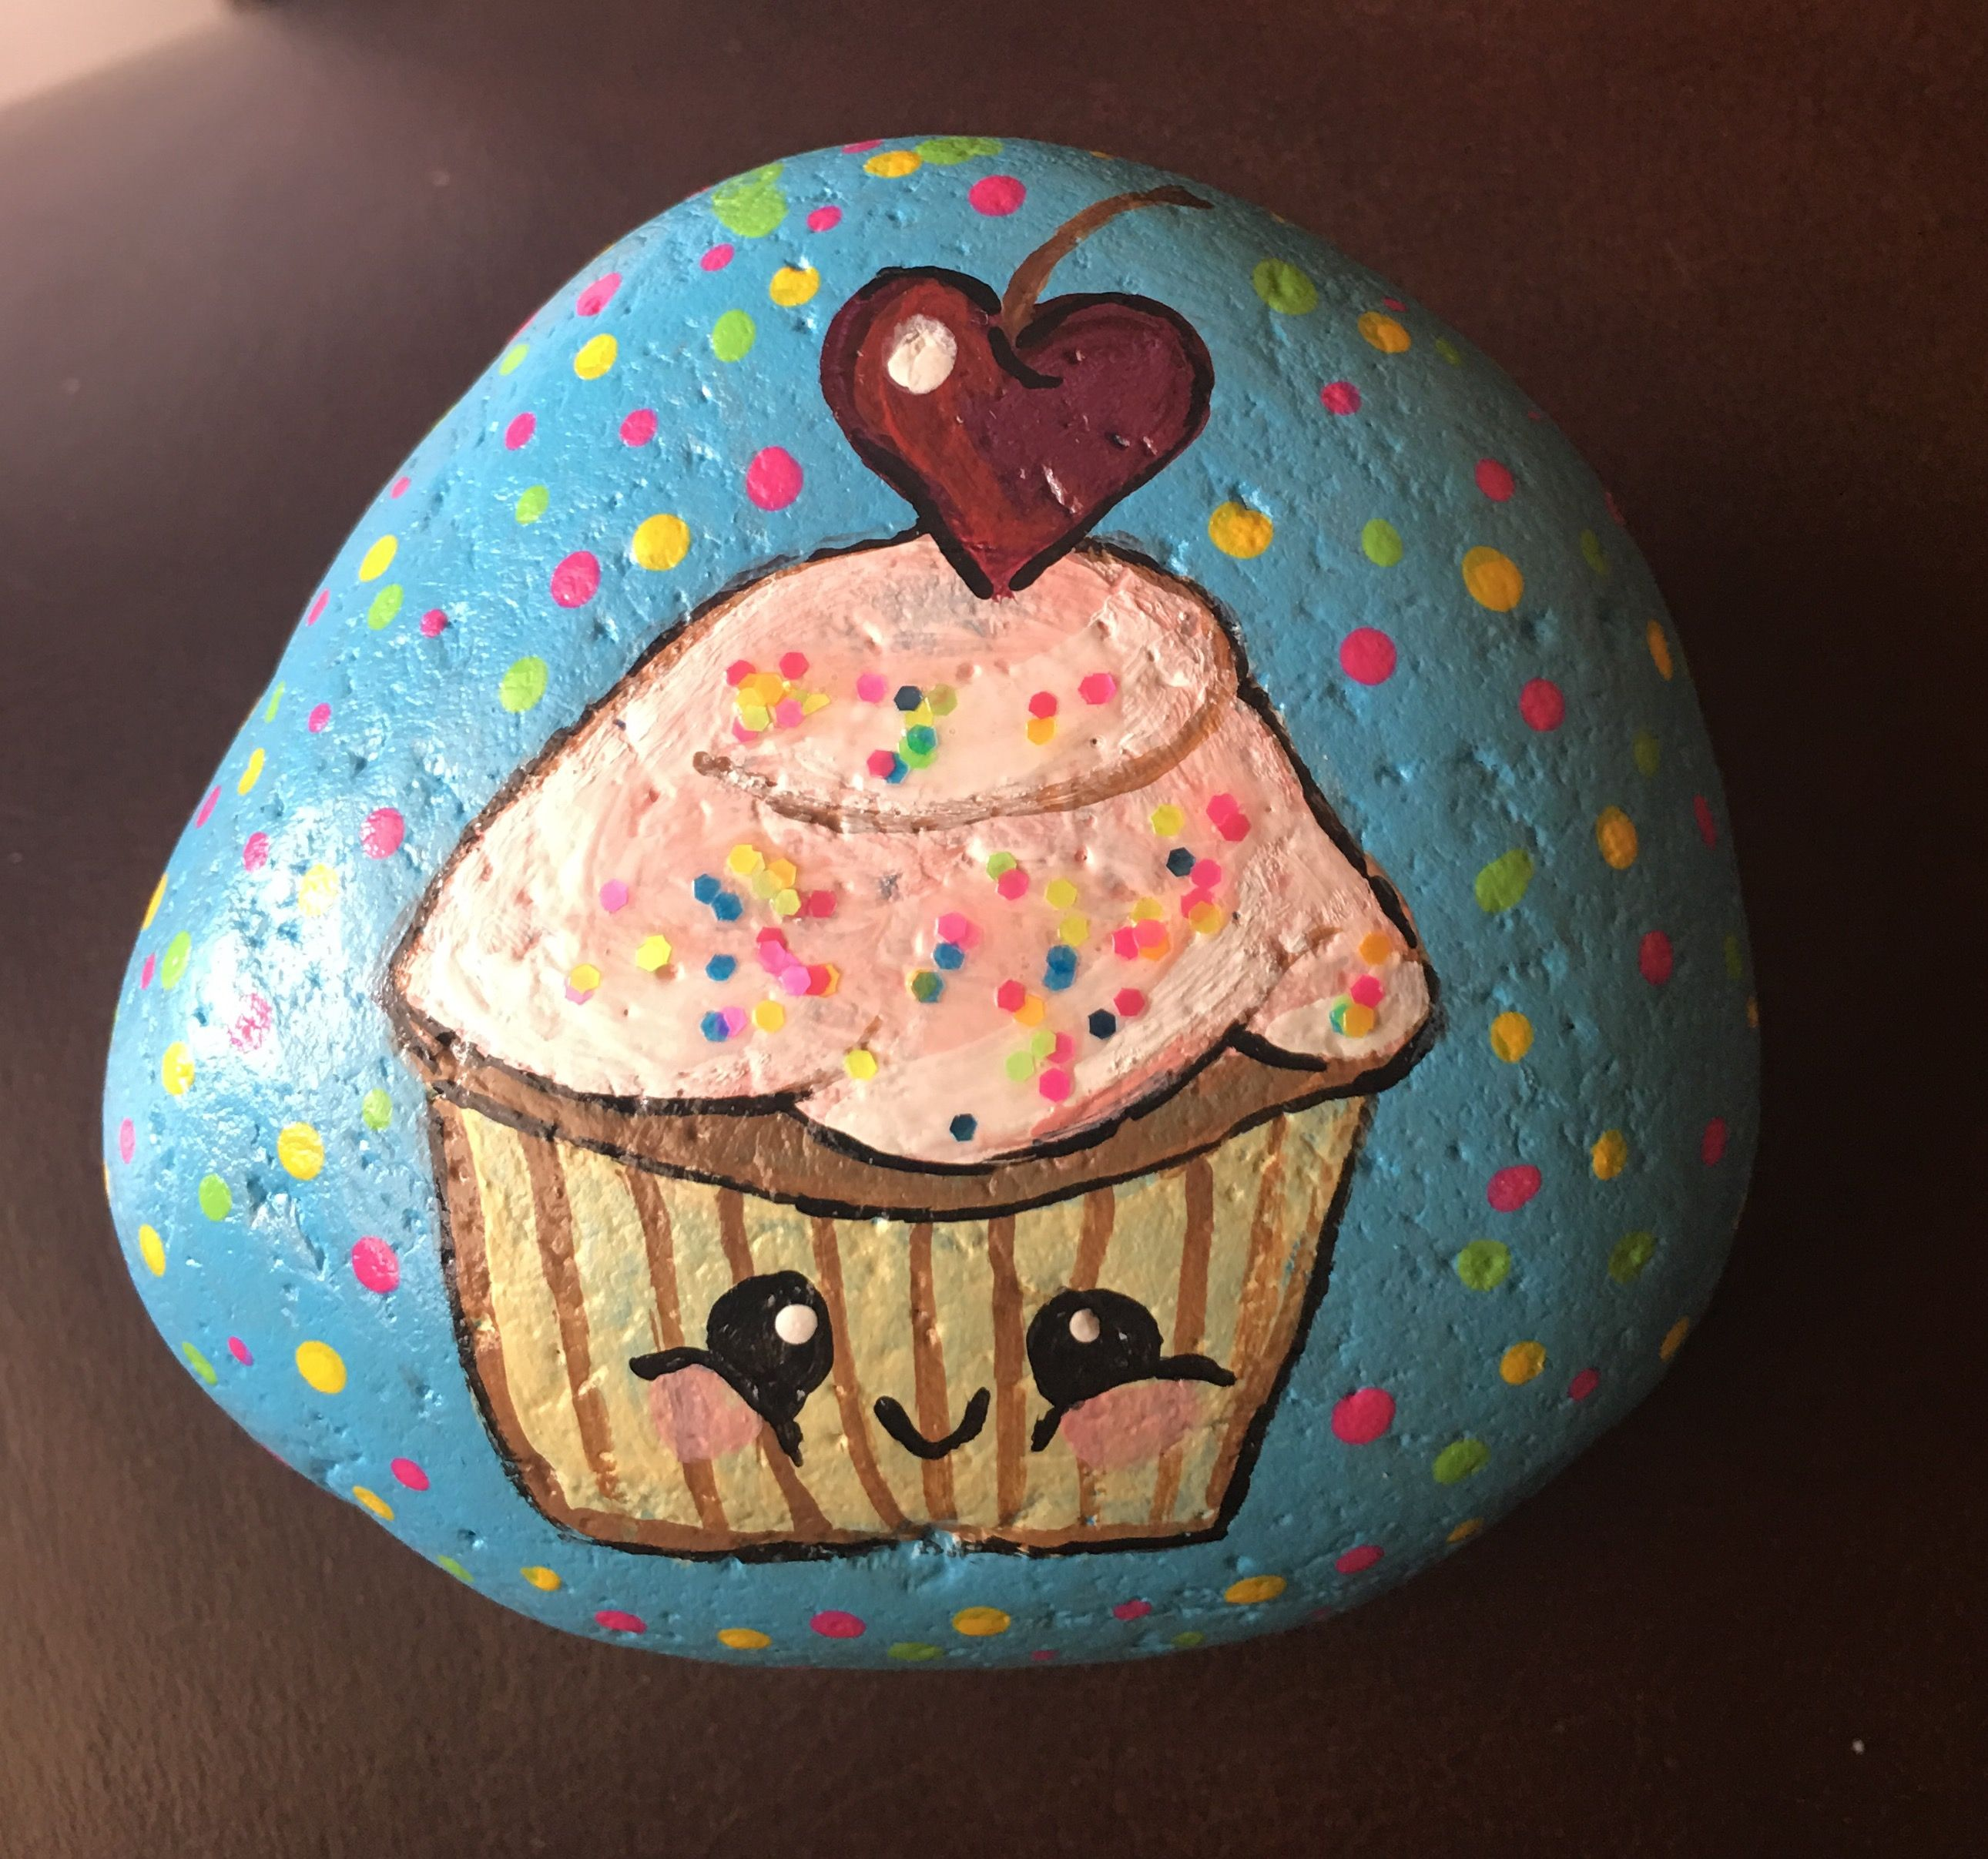 Cupcake painted rock the sprinkles on her frosting is